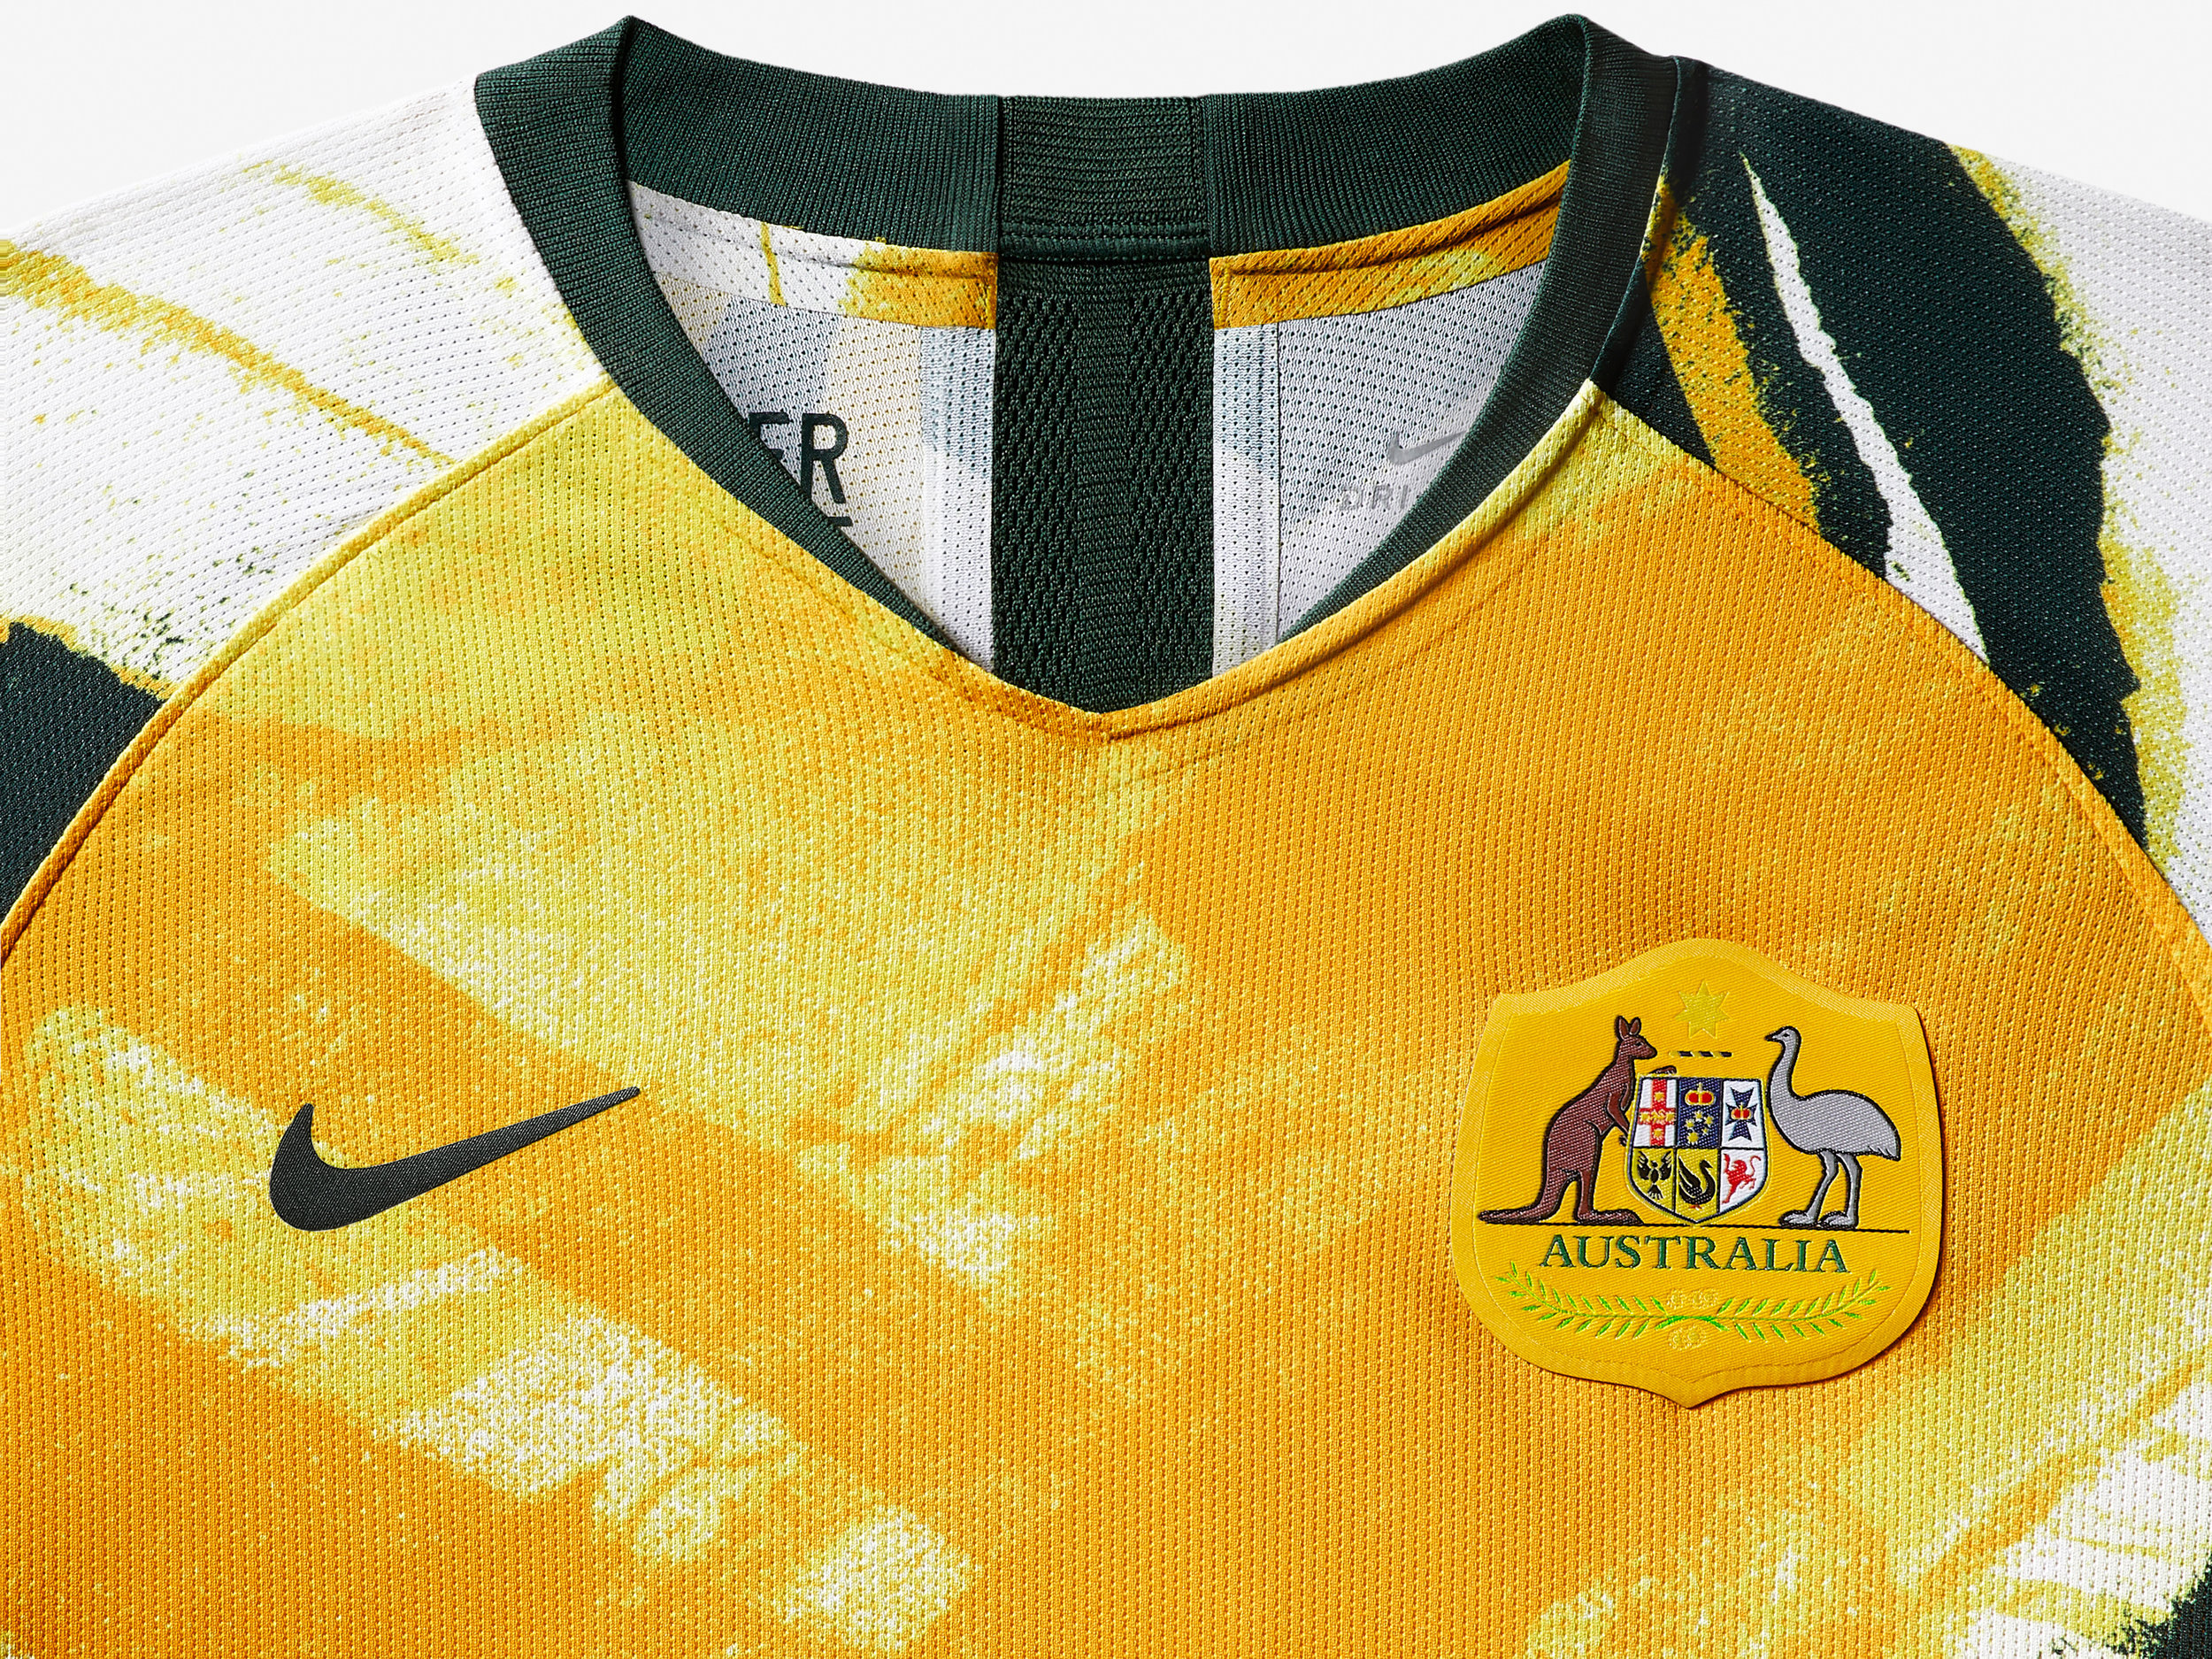 Detailing of the Australian home kit – worthy of the young Matildas squad